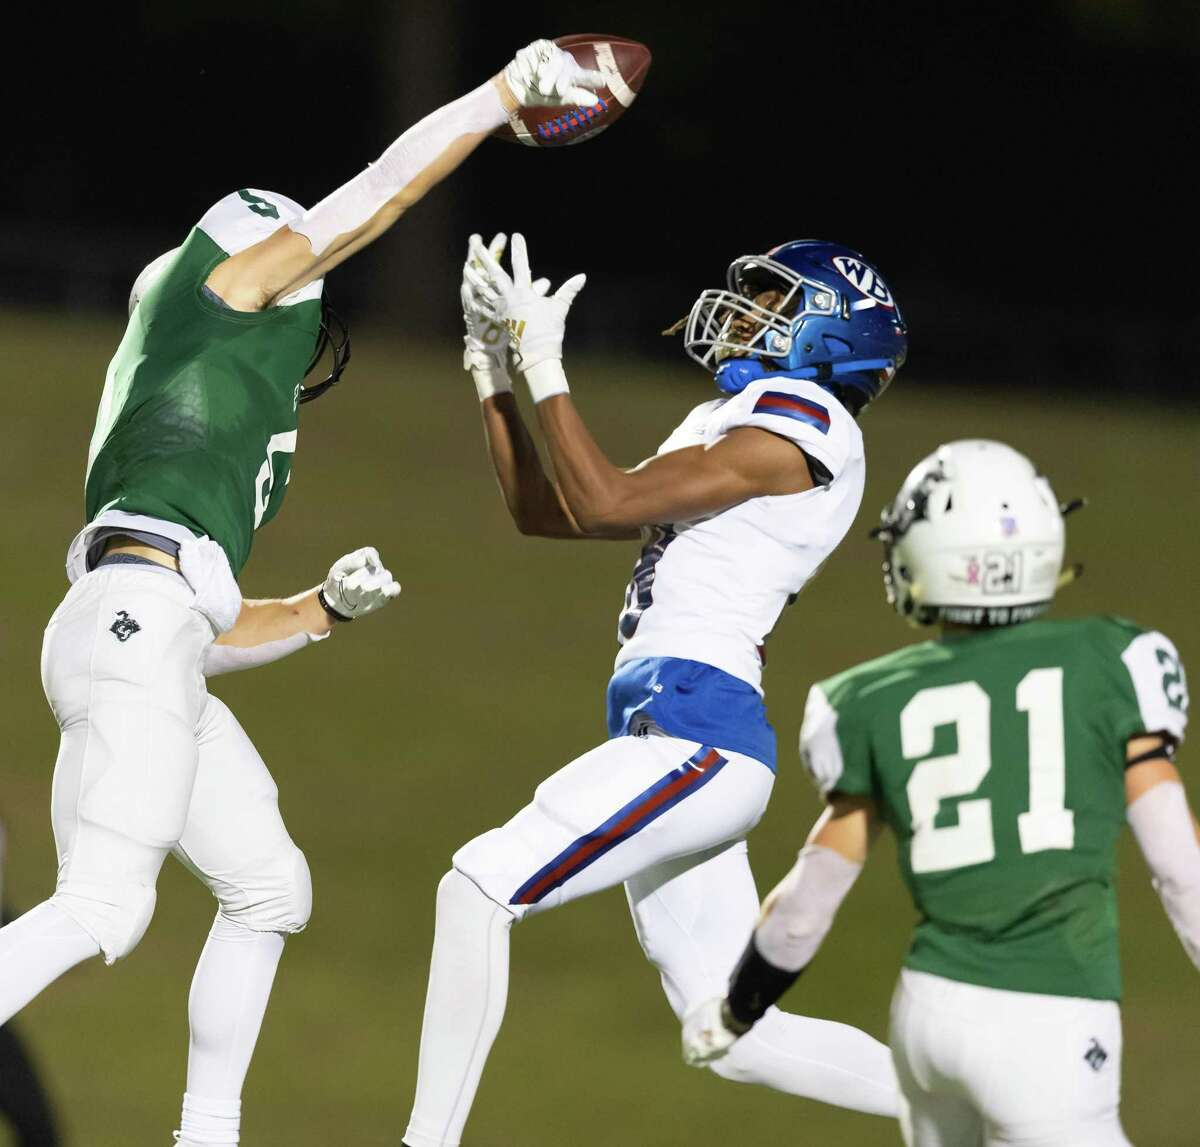 Max Williams (5) of the Clear Falls Knights knocks the ball away from Ja'Von Sorrell (18) of the West Brook Bruins in the second half during a High School football playoff game on Friday, December 18, 2020 at GPISD Stadium in Houston, Texas. On Thursday, Williams knocked down a fourth-down pass with 1:12 remaining in the game to lift Clear Falls to a 10-9 win over Katy Taylor.